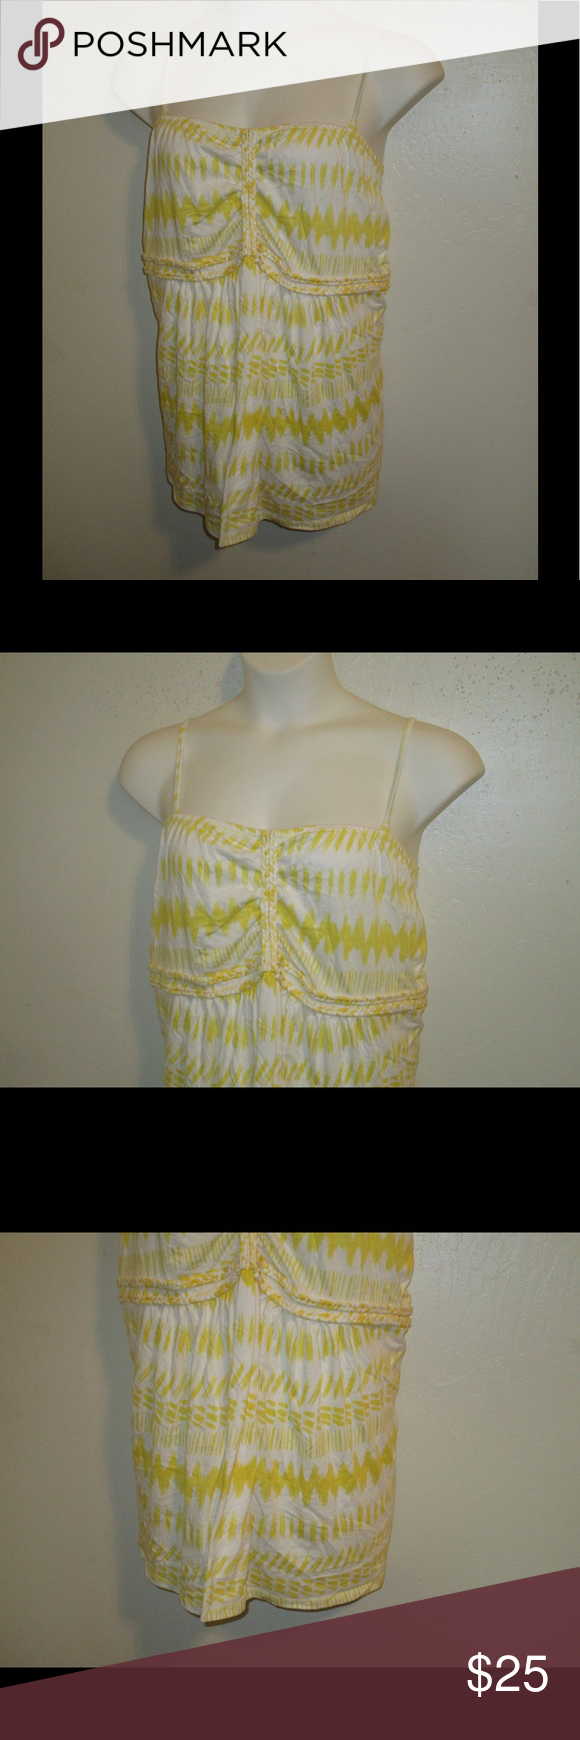 YELLOW WHITE TANK TOP BY LANE BRANT * 26/28 * BRAND NEW; YELLOW WHITE BRAID STRAP TANK TOP BY LANE BRYANT * 26/28 *. PLEASE FEEL FREE TO ASK ANY QUESTIONS YOU MAY HAVE AND I WILL REPLY WITHIN 48 HOURS. THE BEST DEALS ARE BUNDLED SO LOOK AROUND MY CLOSET AND HAPPY SHOPPING! Lane Bryant Tops Tank Tops